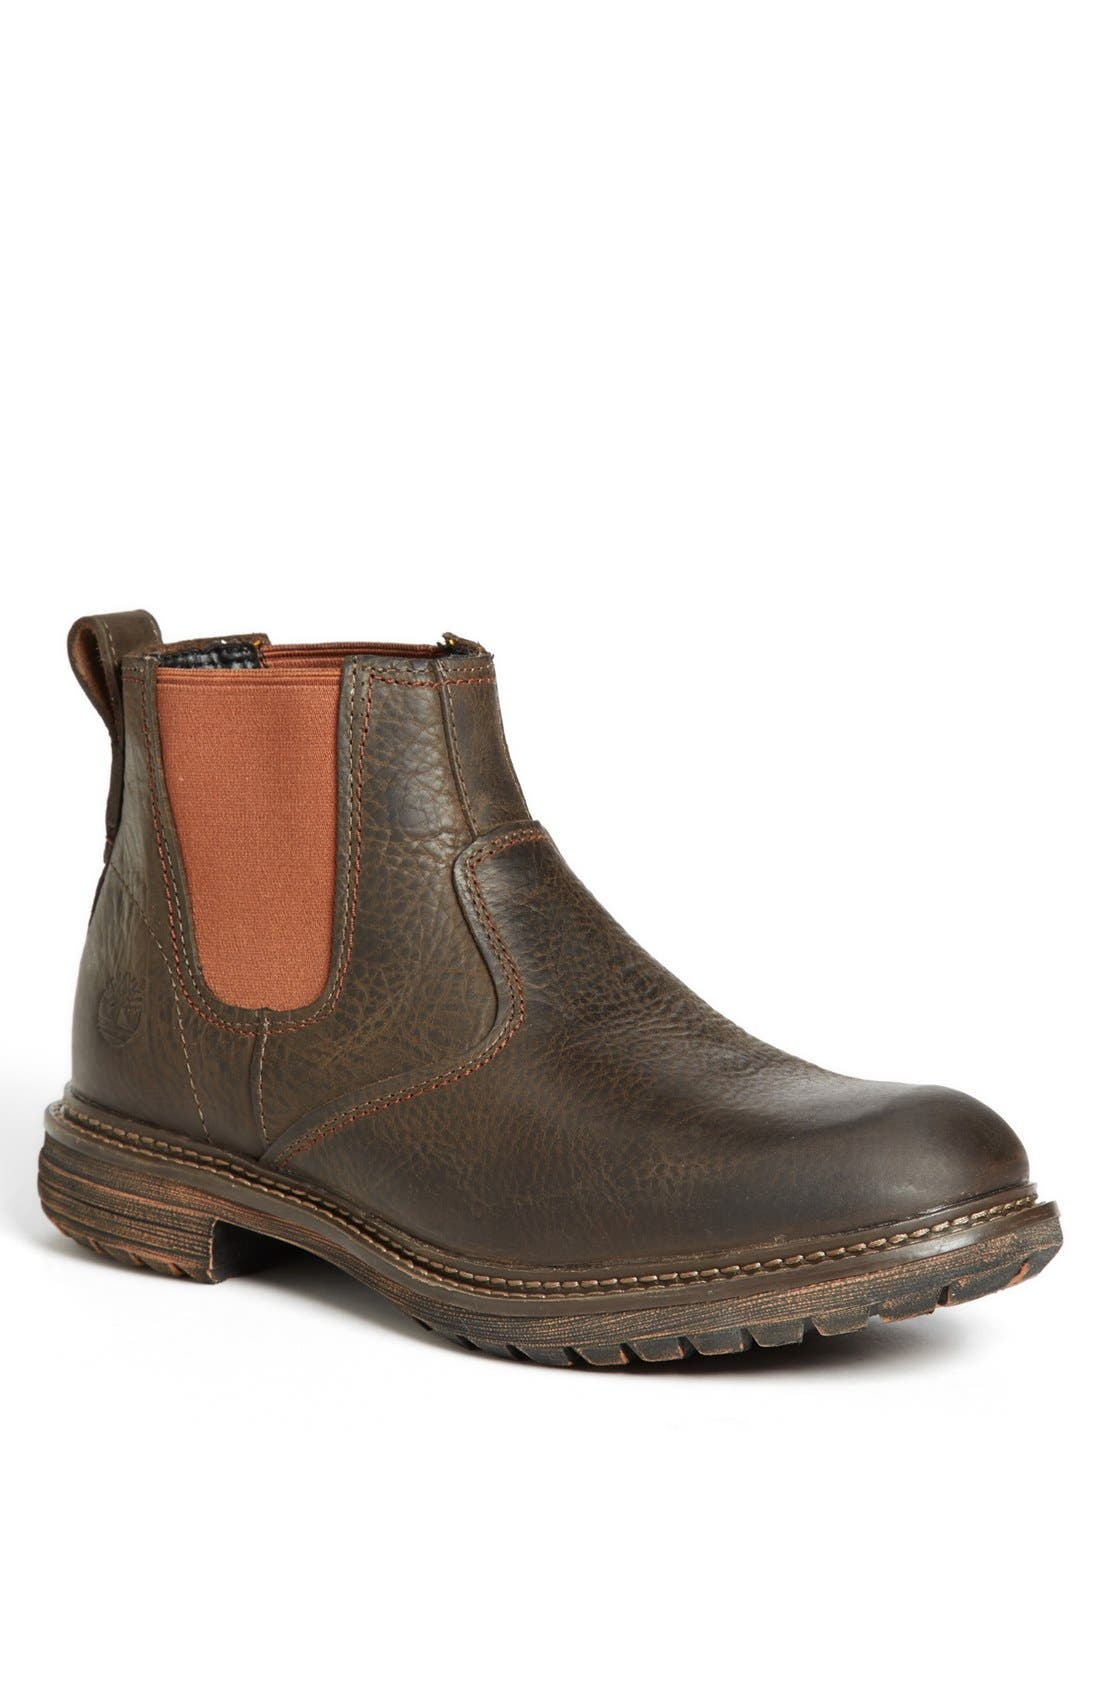 Alternate Image 1 Selected - Timberland Earthkeepers® 'Tremont' Chelsea Boot